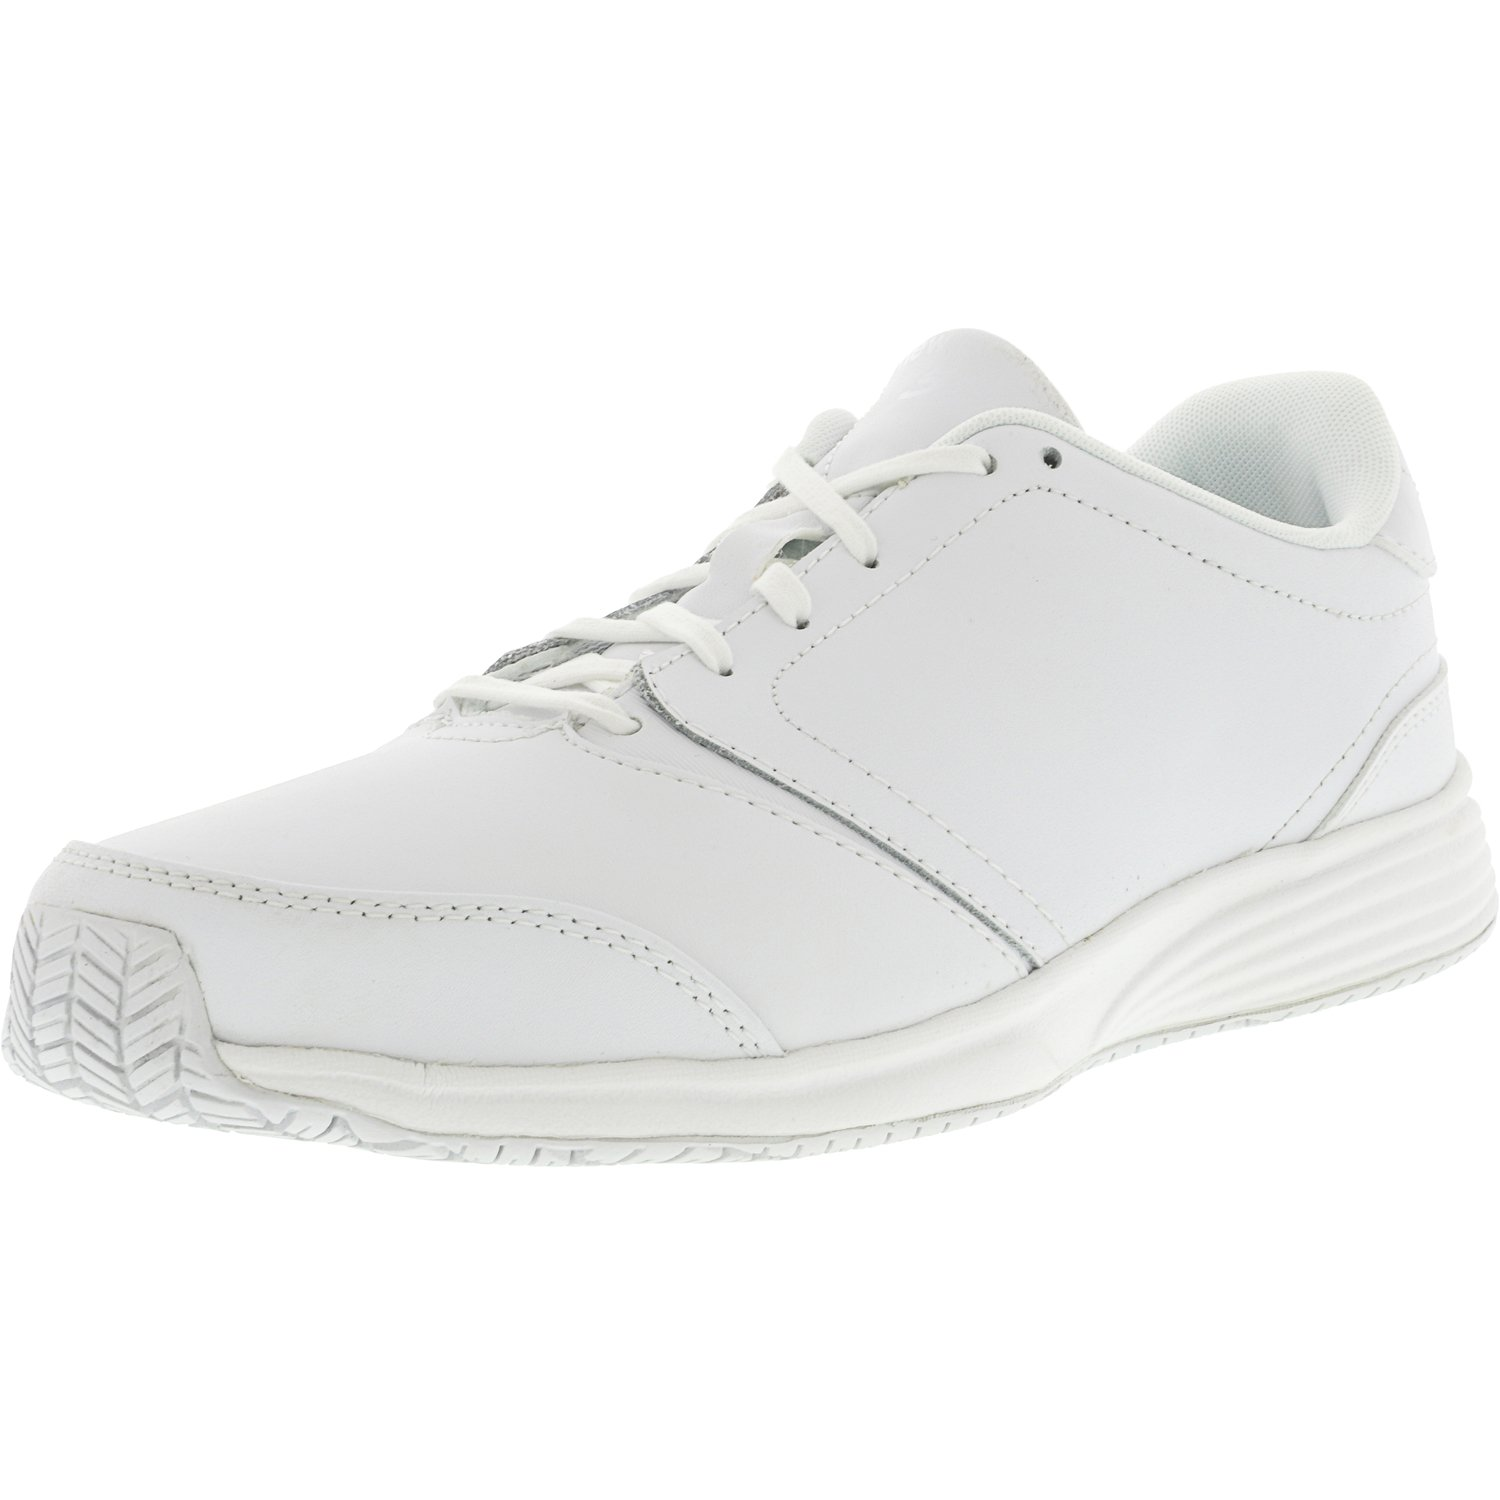 New Balance Women's Wid526 Wt Ankle-High Training Shoes -...